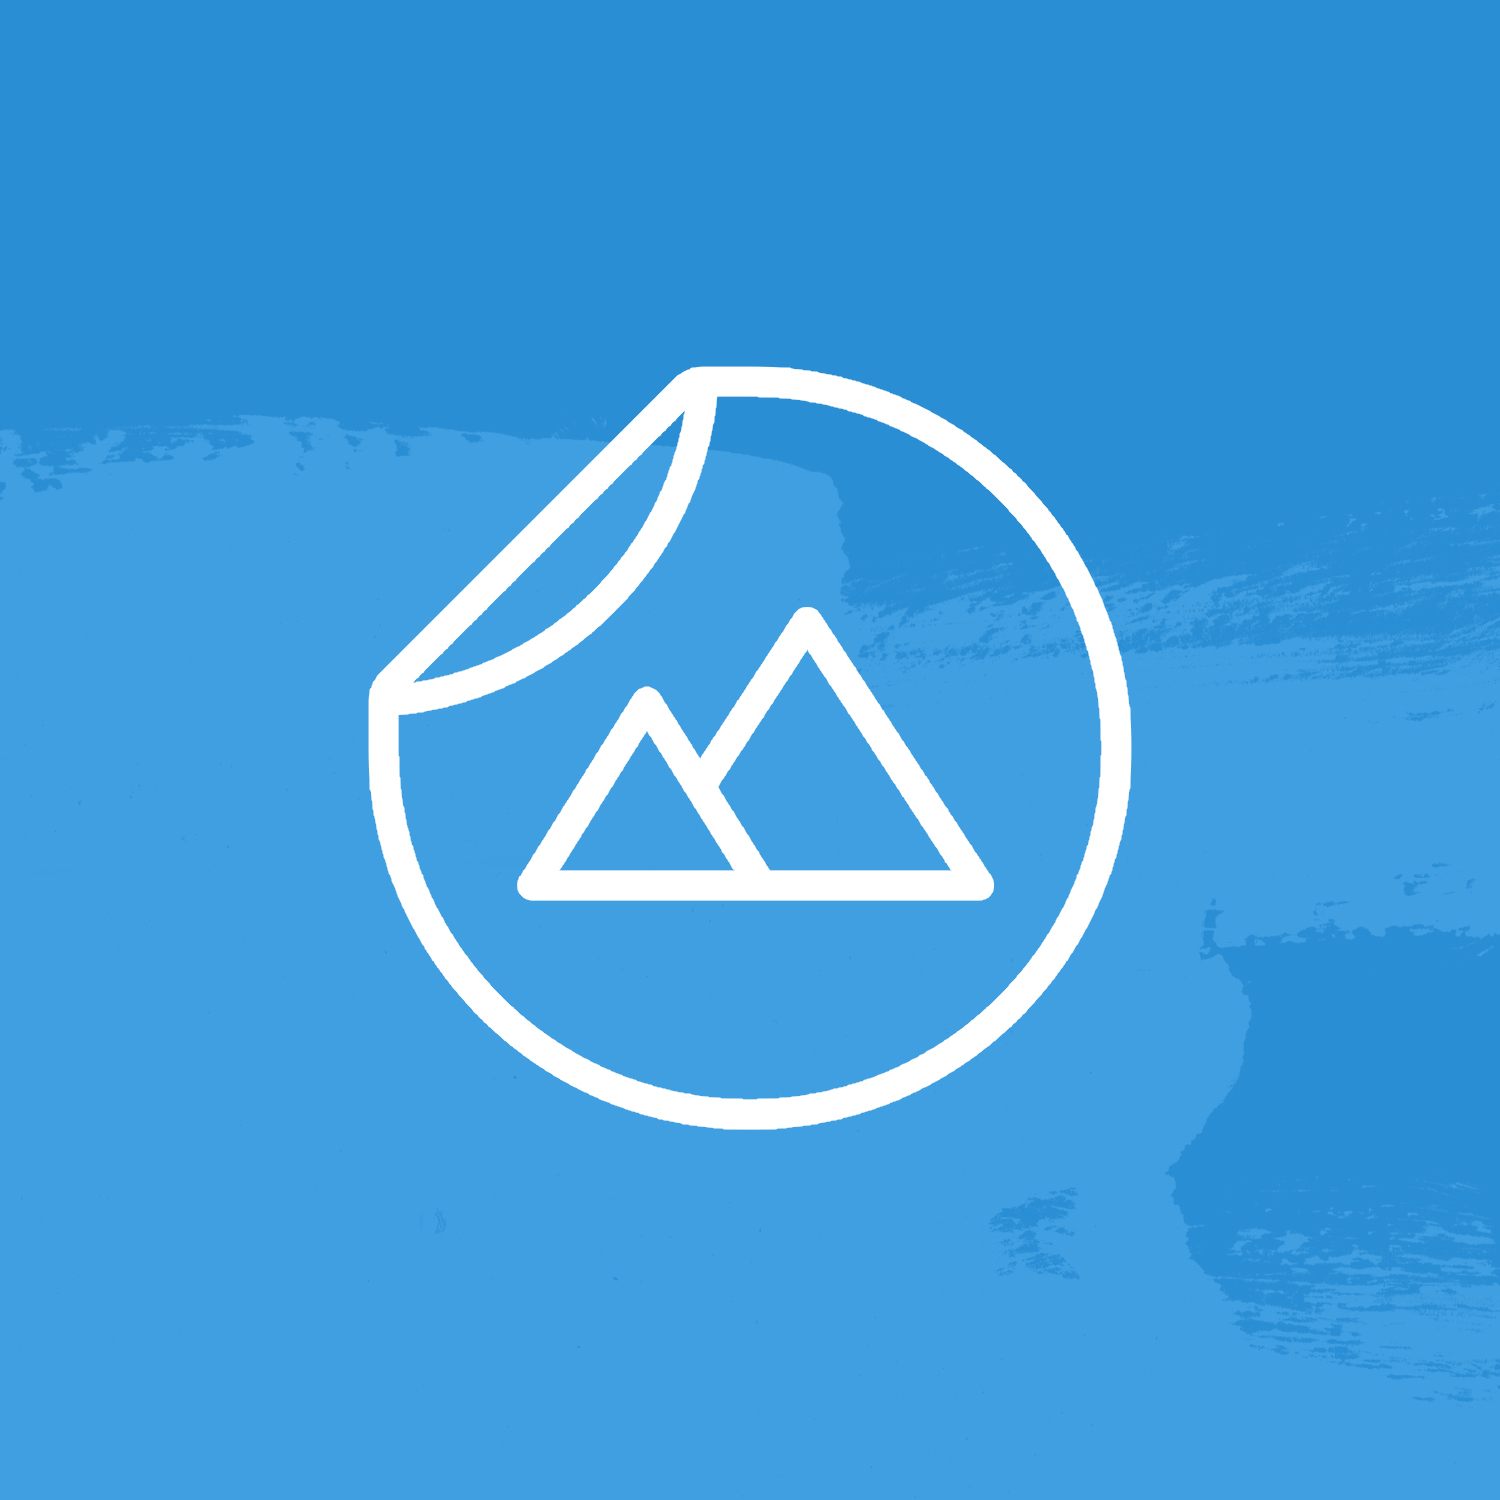 Sticker with mountains on a blue background